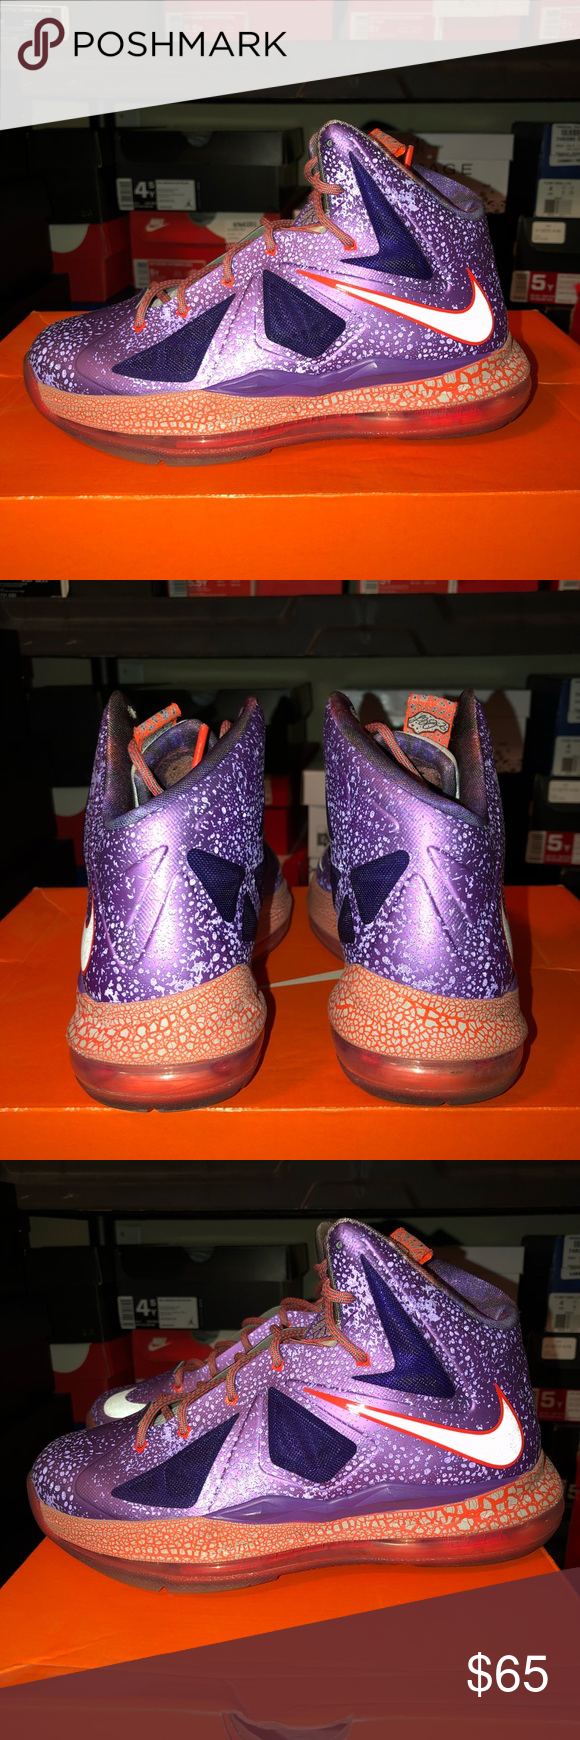 """cheap for discount b4e2a 5e86c Nike Lebron X """"All Star Game"""" (ASG) size 5 GS Gradeschool size 5 9 10  condition Worn once to class Nike Shoes Sneakers"""